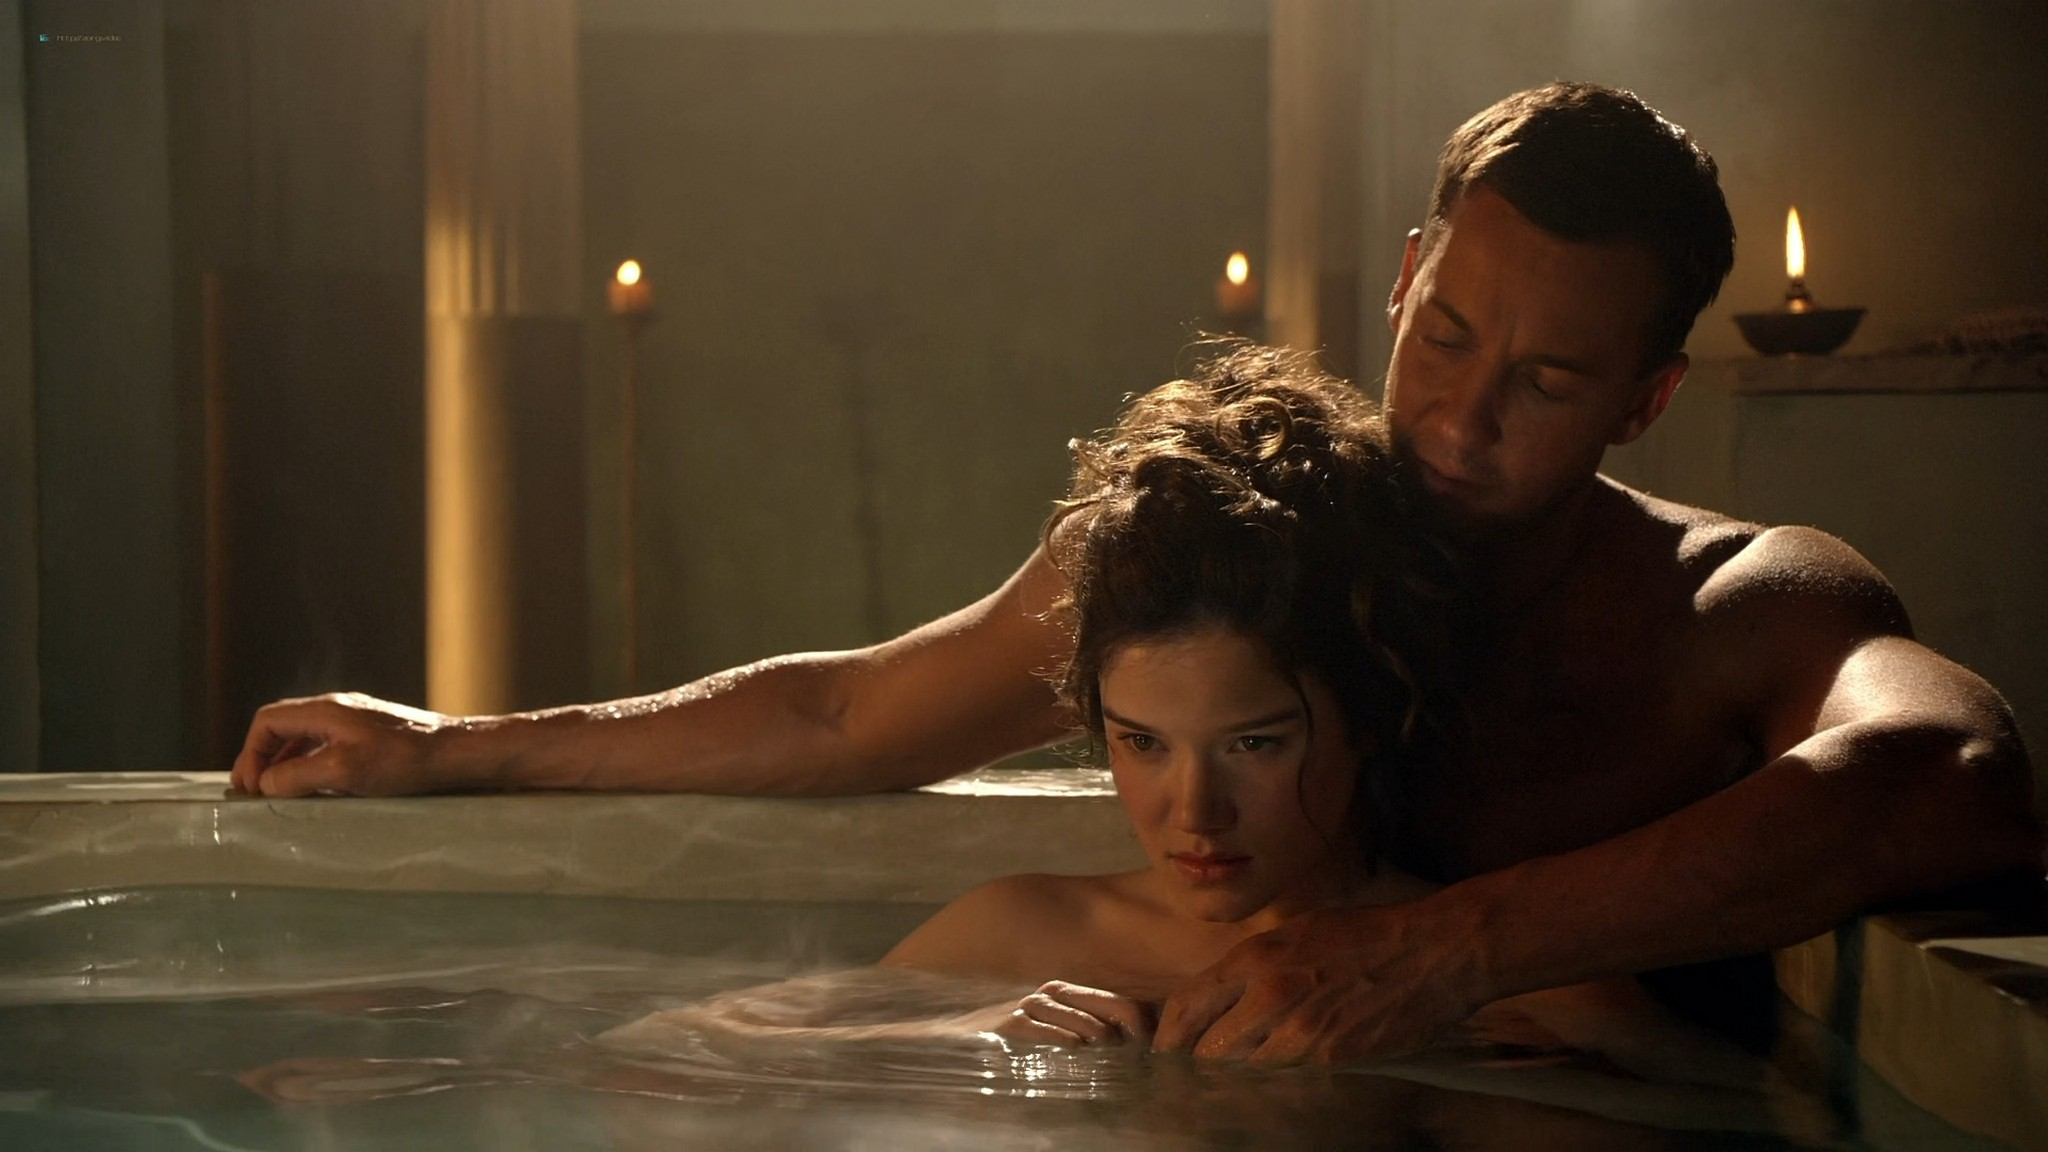 Hanna Mangan Lawrence nude sex Cynthia Addai Robinson and others nude Spartacus vengeance 2012 s2e8 9 HD 1080p BluRay 009